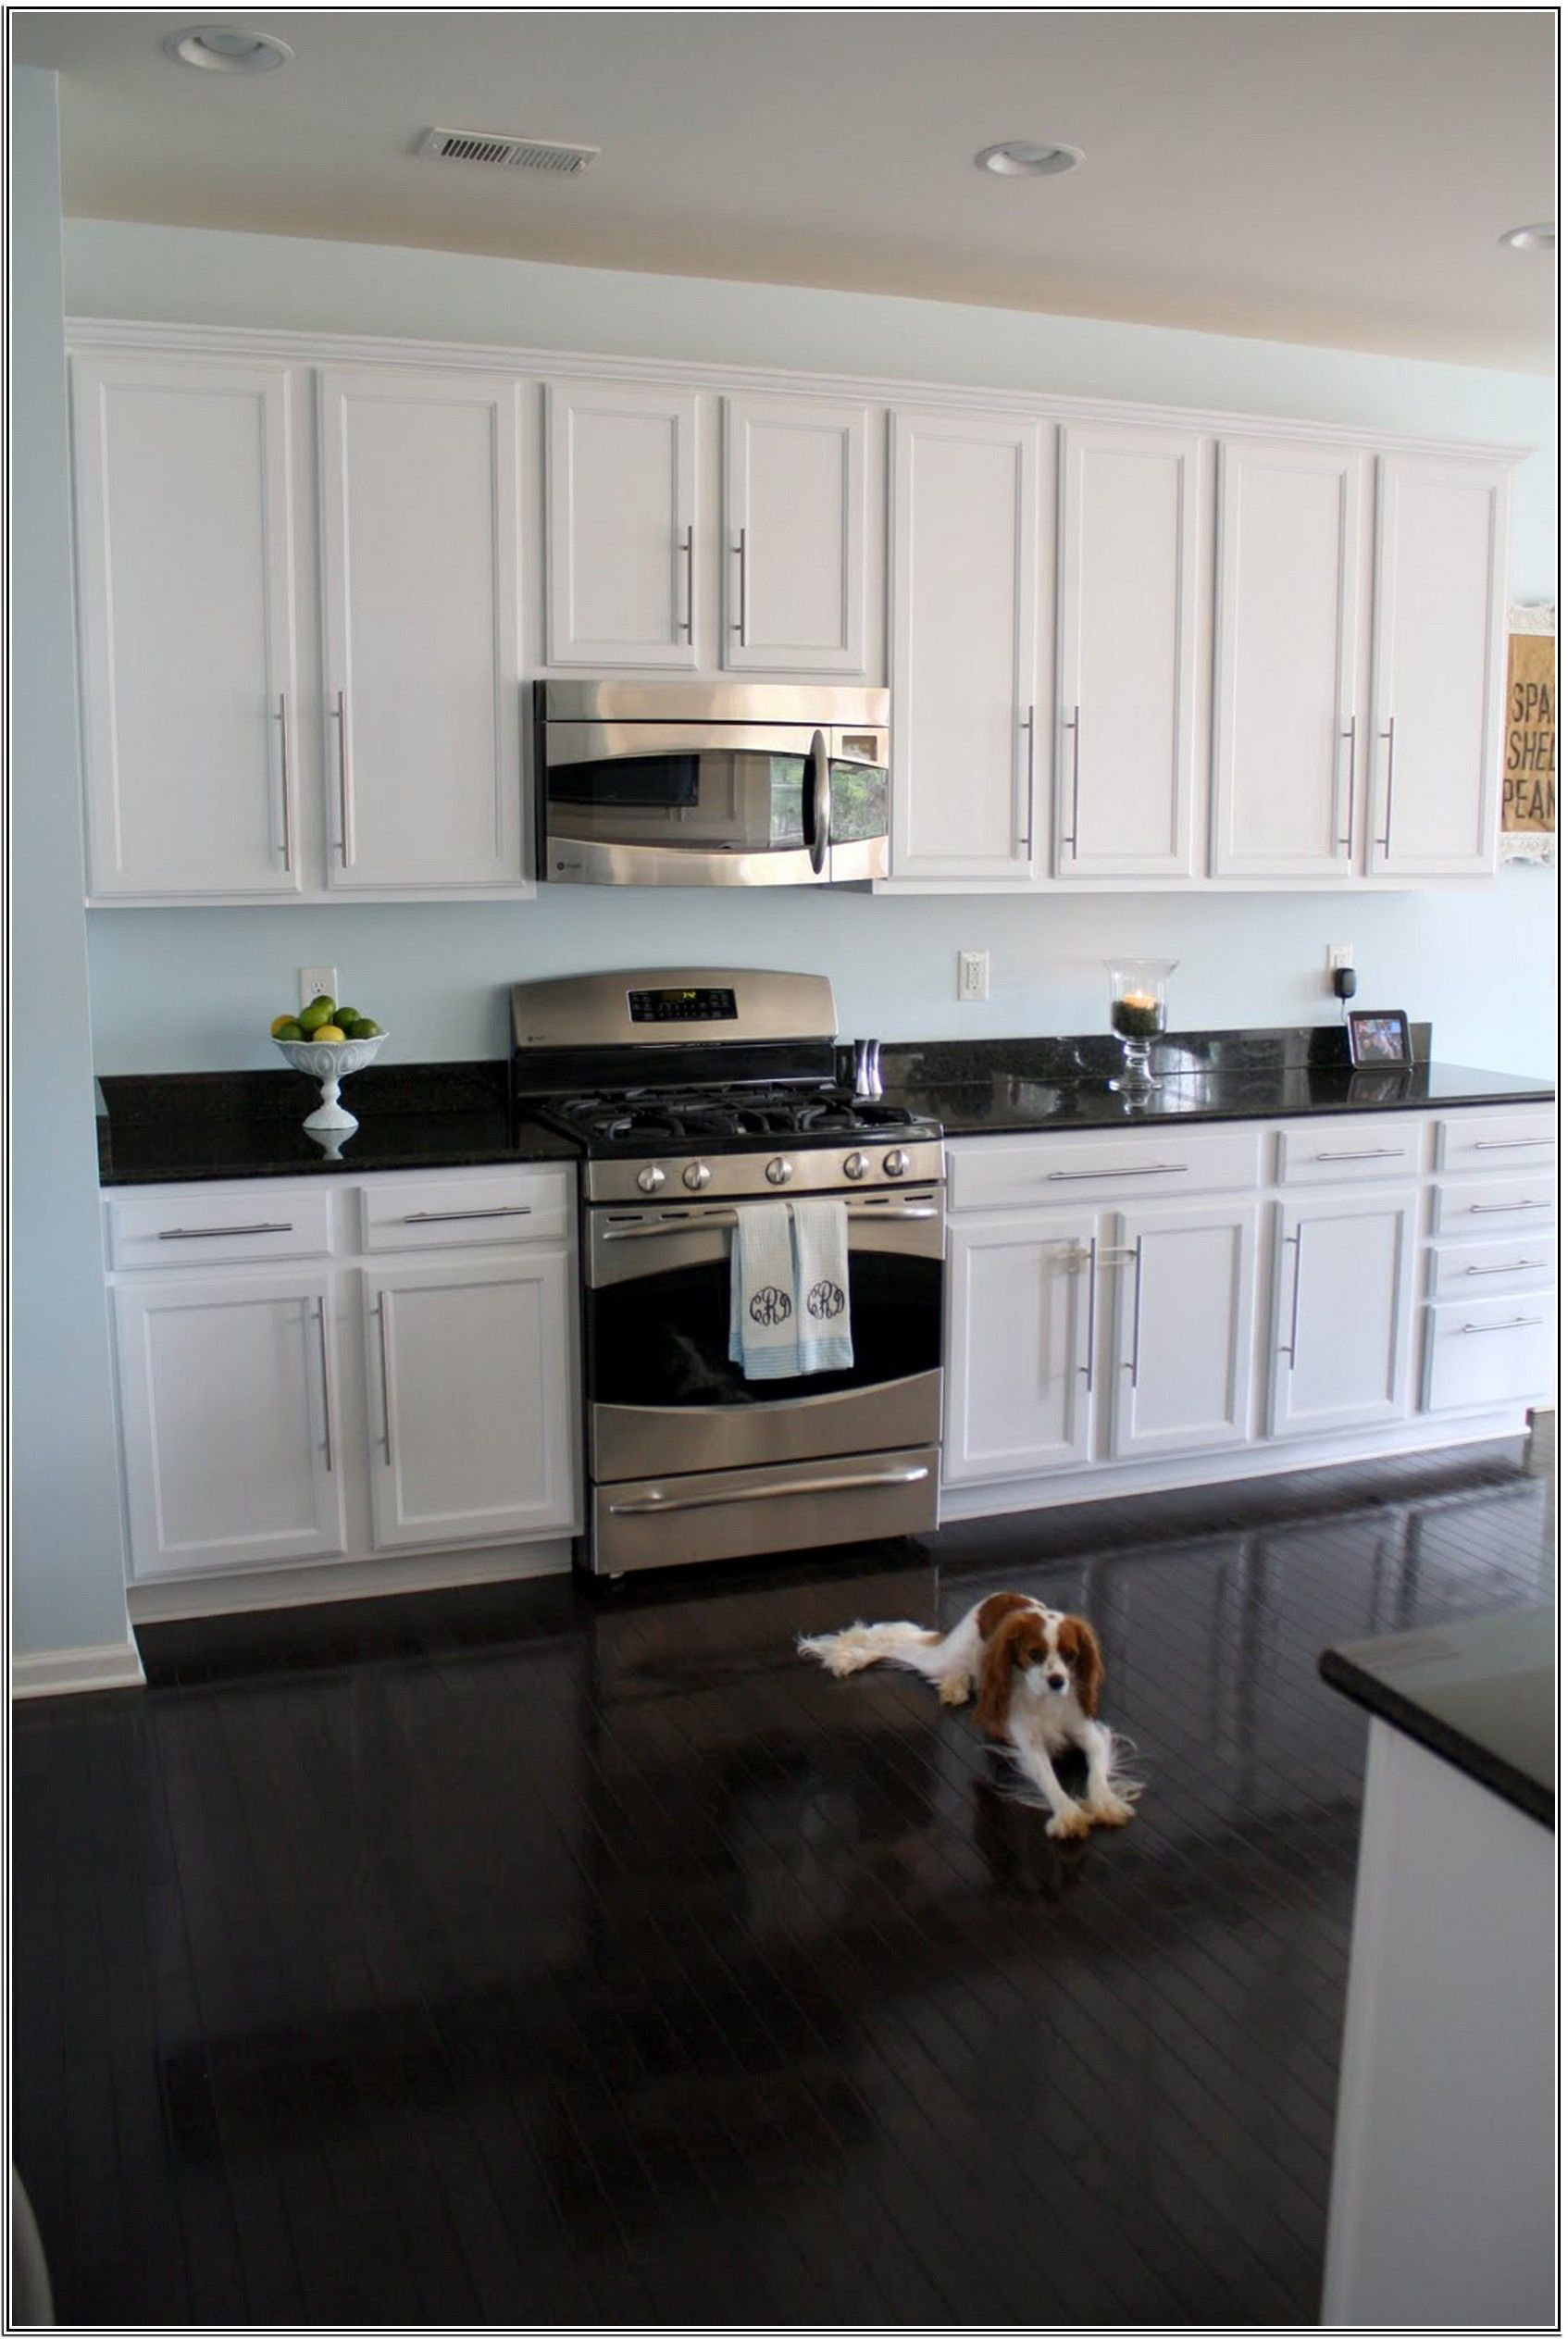 Make The Most Of Your Existing Kitchen Cabinets With A Clever Cabinet Makeover Replacing Ki White Modern Kitchen Dark Kitchen Floors Black Kitchen Countertops